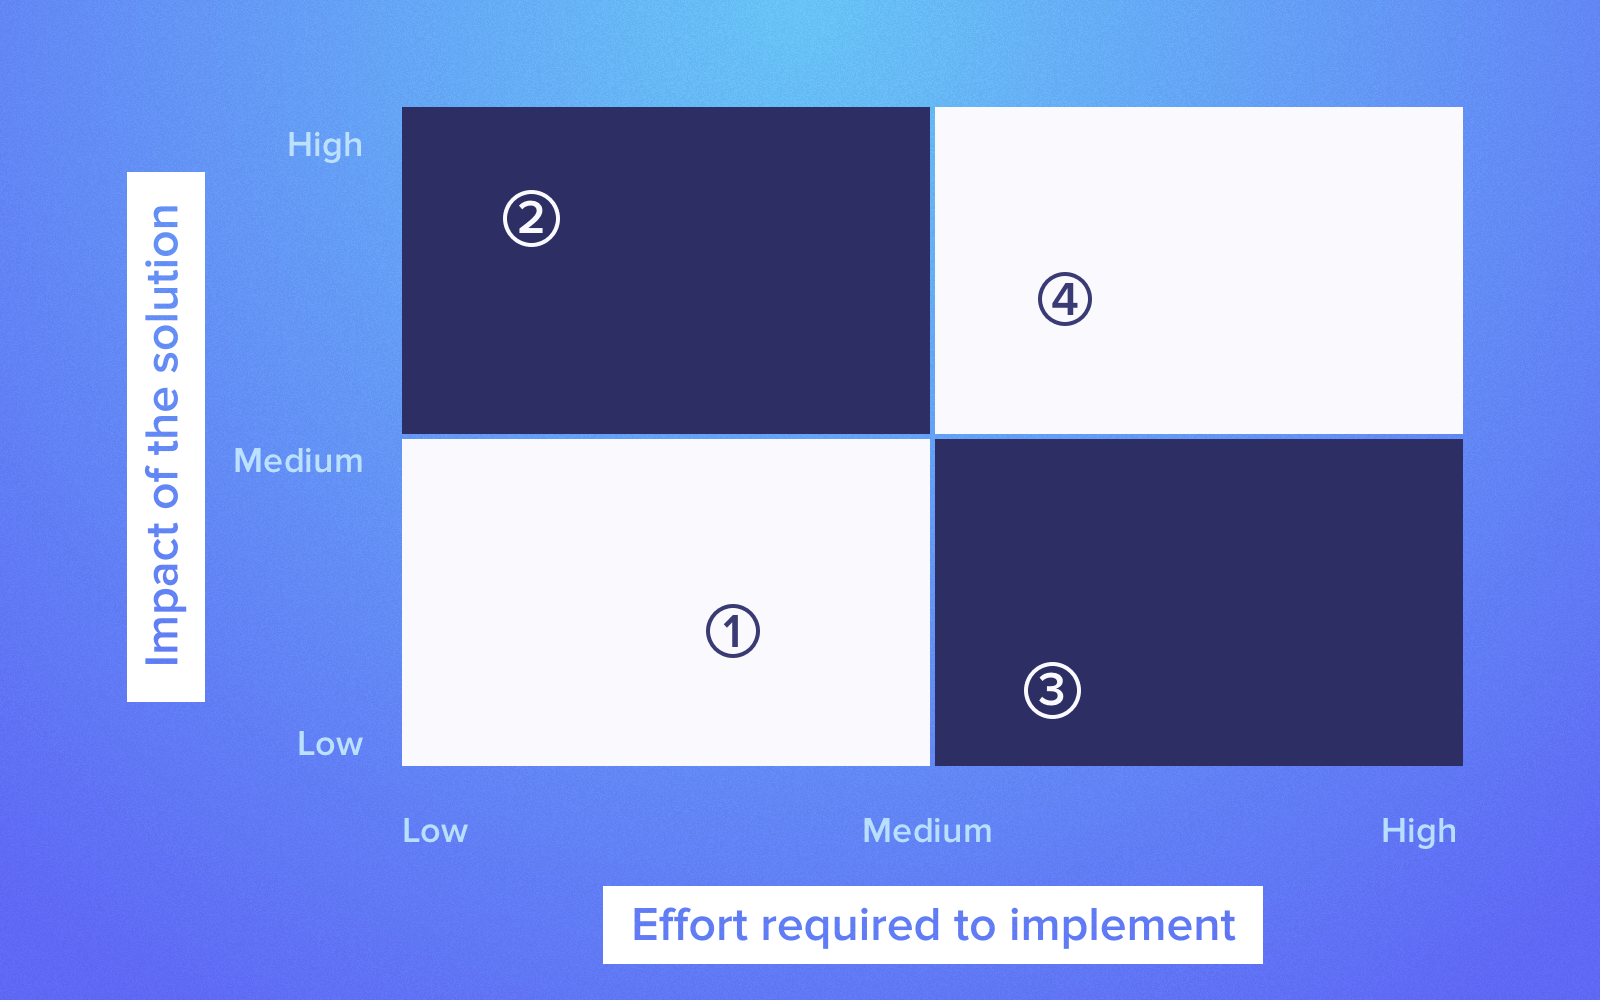 Enterprise UX: Defining efforts and impact of a feature on business